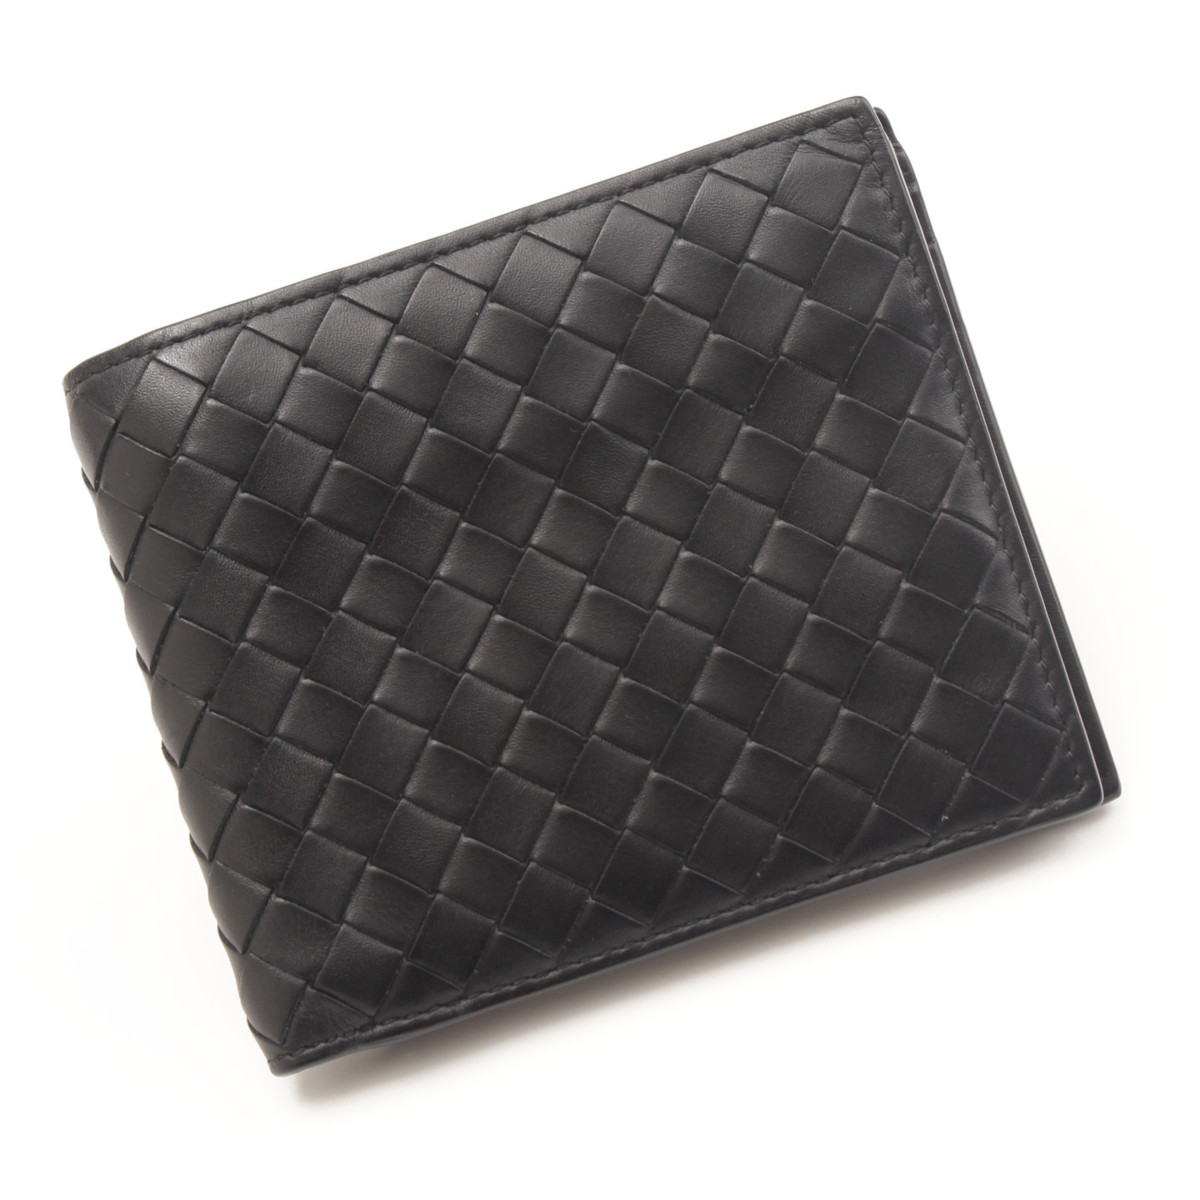 the latest 693be 62e89 ルイヴィトン(Louis Vuitton) タイガ ポルトフォイユ アメリゴ ...